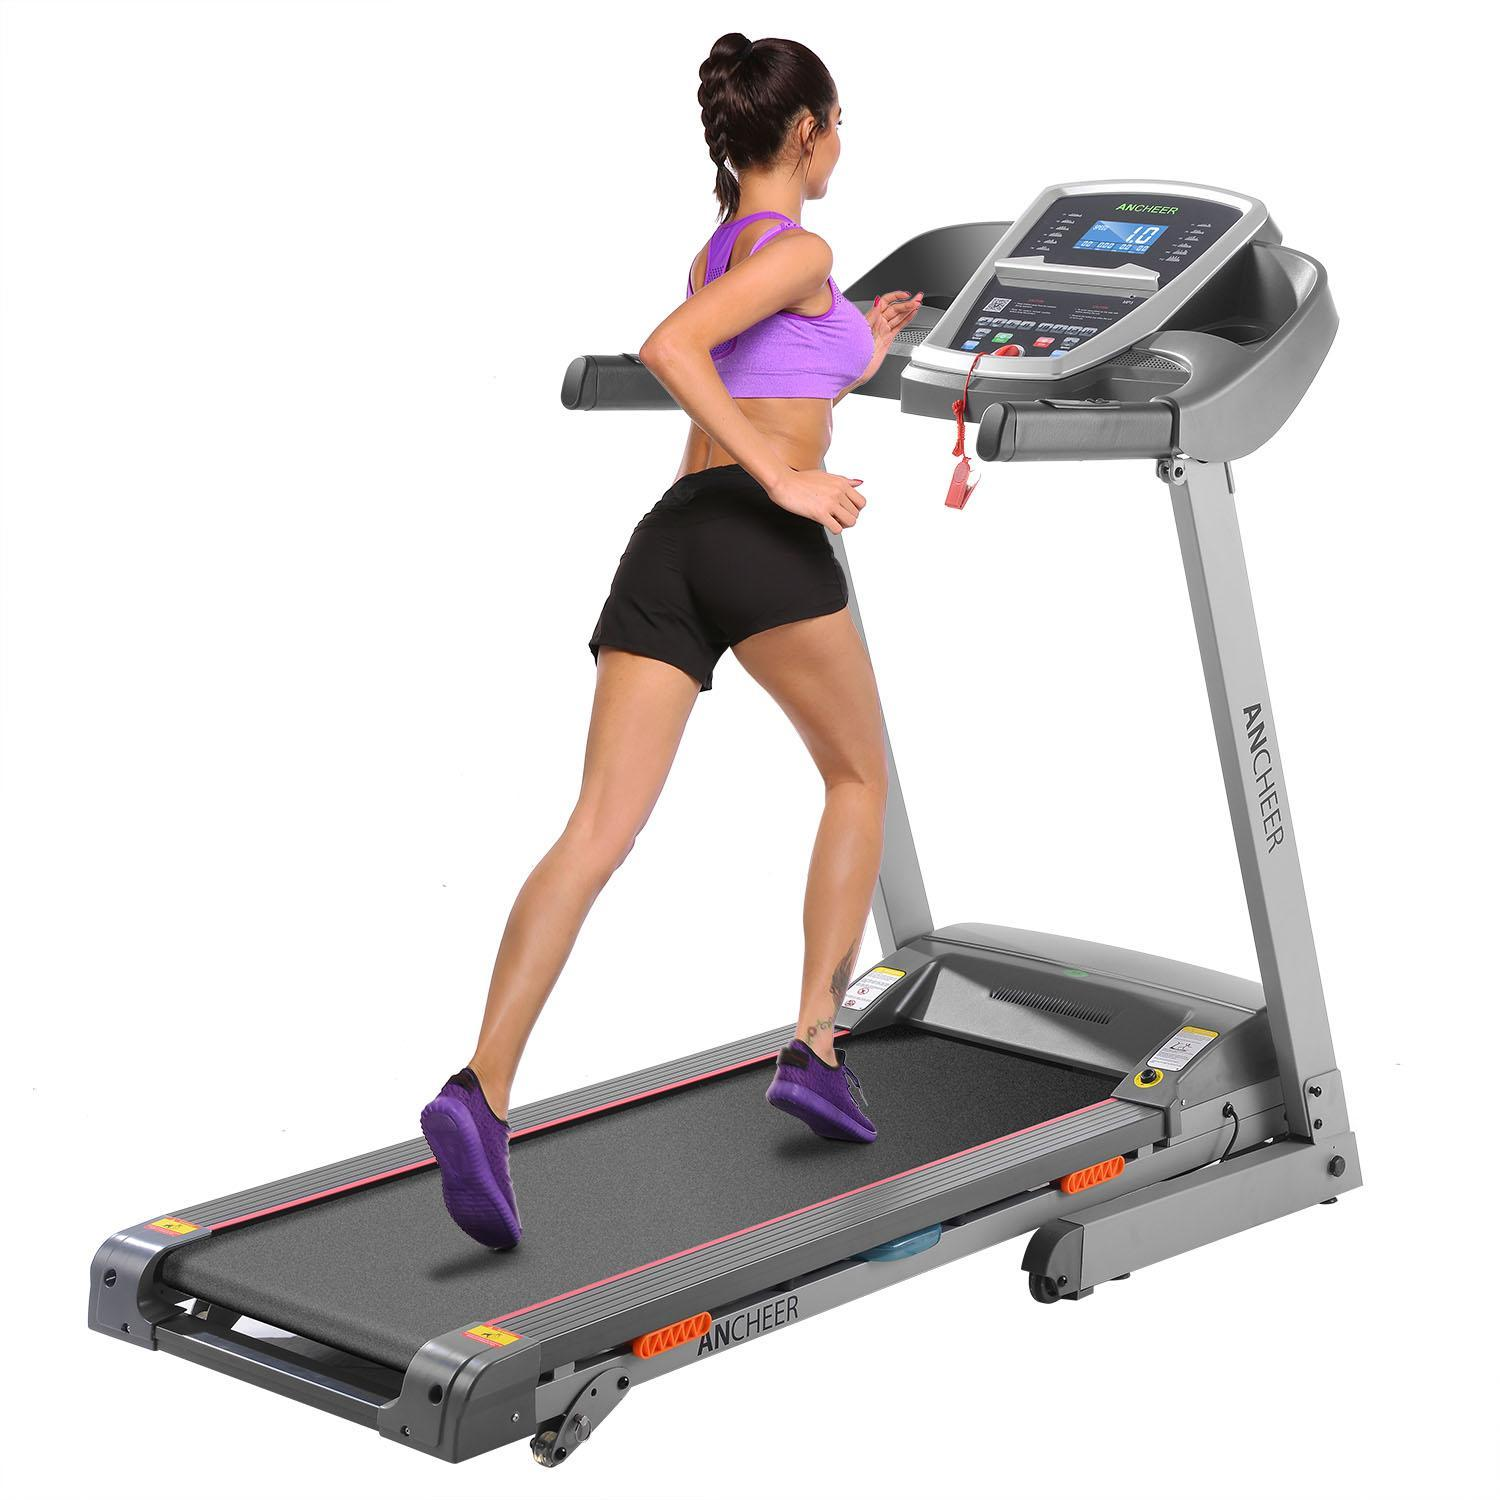 3.0Hp Electric Folding Treadmill Digital Screen Gym Treadmill Health Fitness Training Equipment